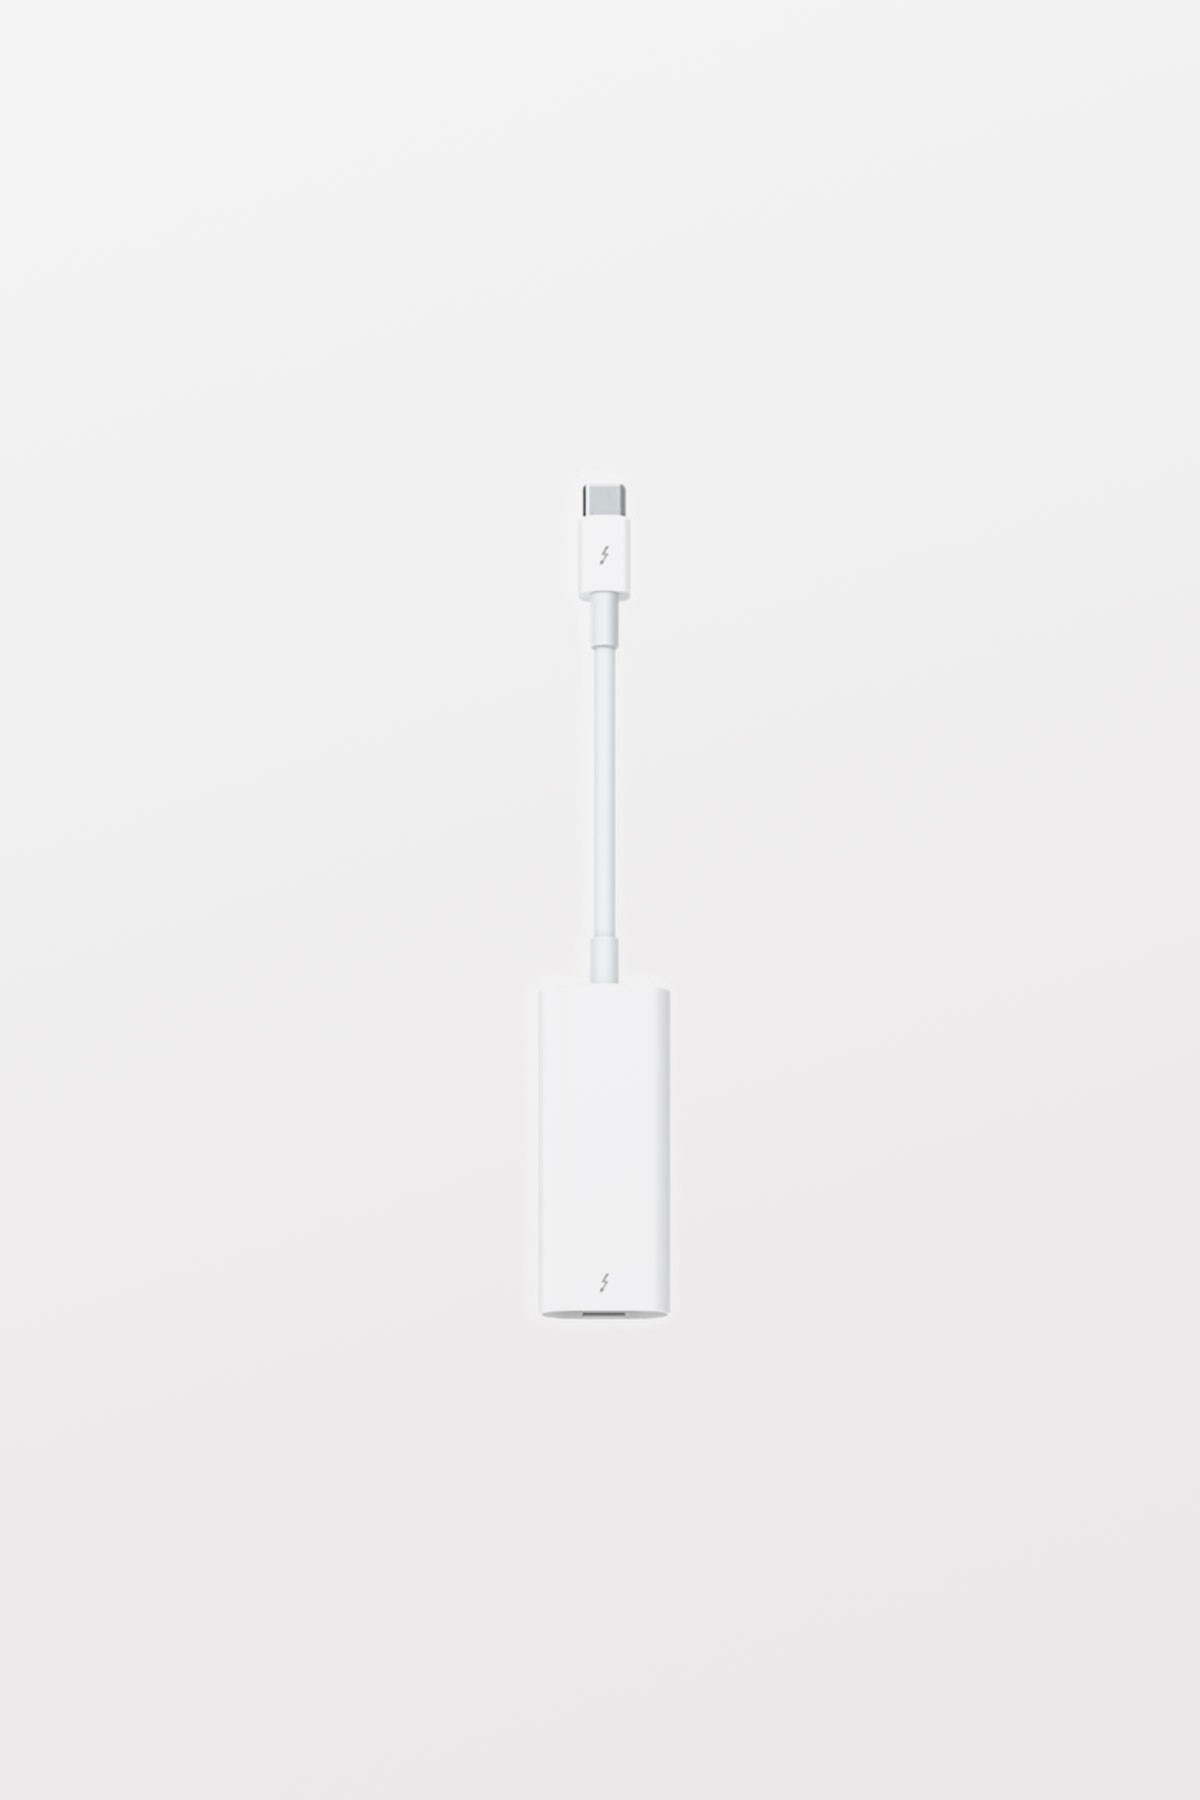 Apple Thunderbolt 3 (USB-C) to Thunderbolt 2 Adapter